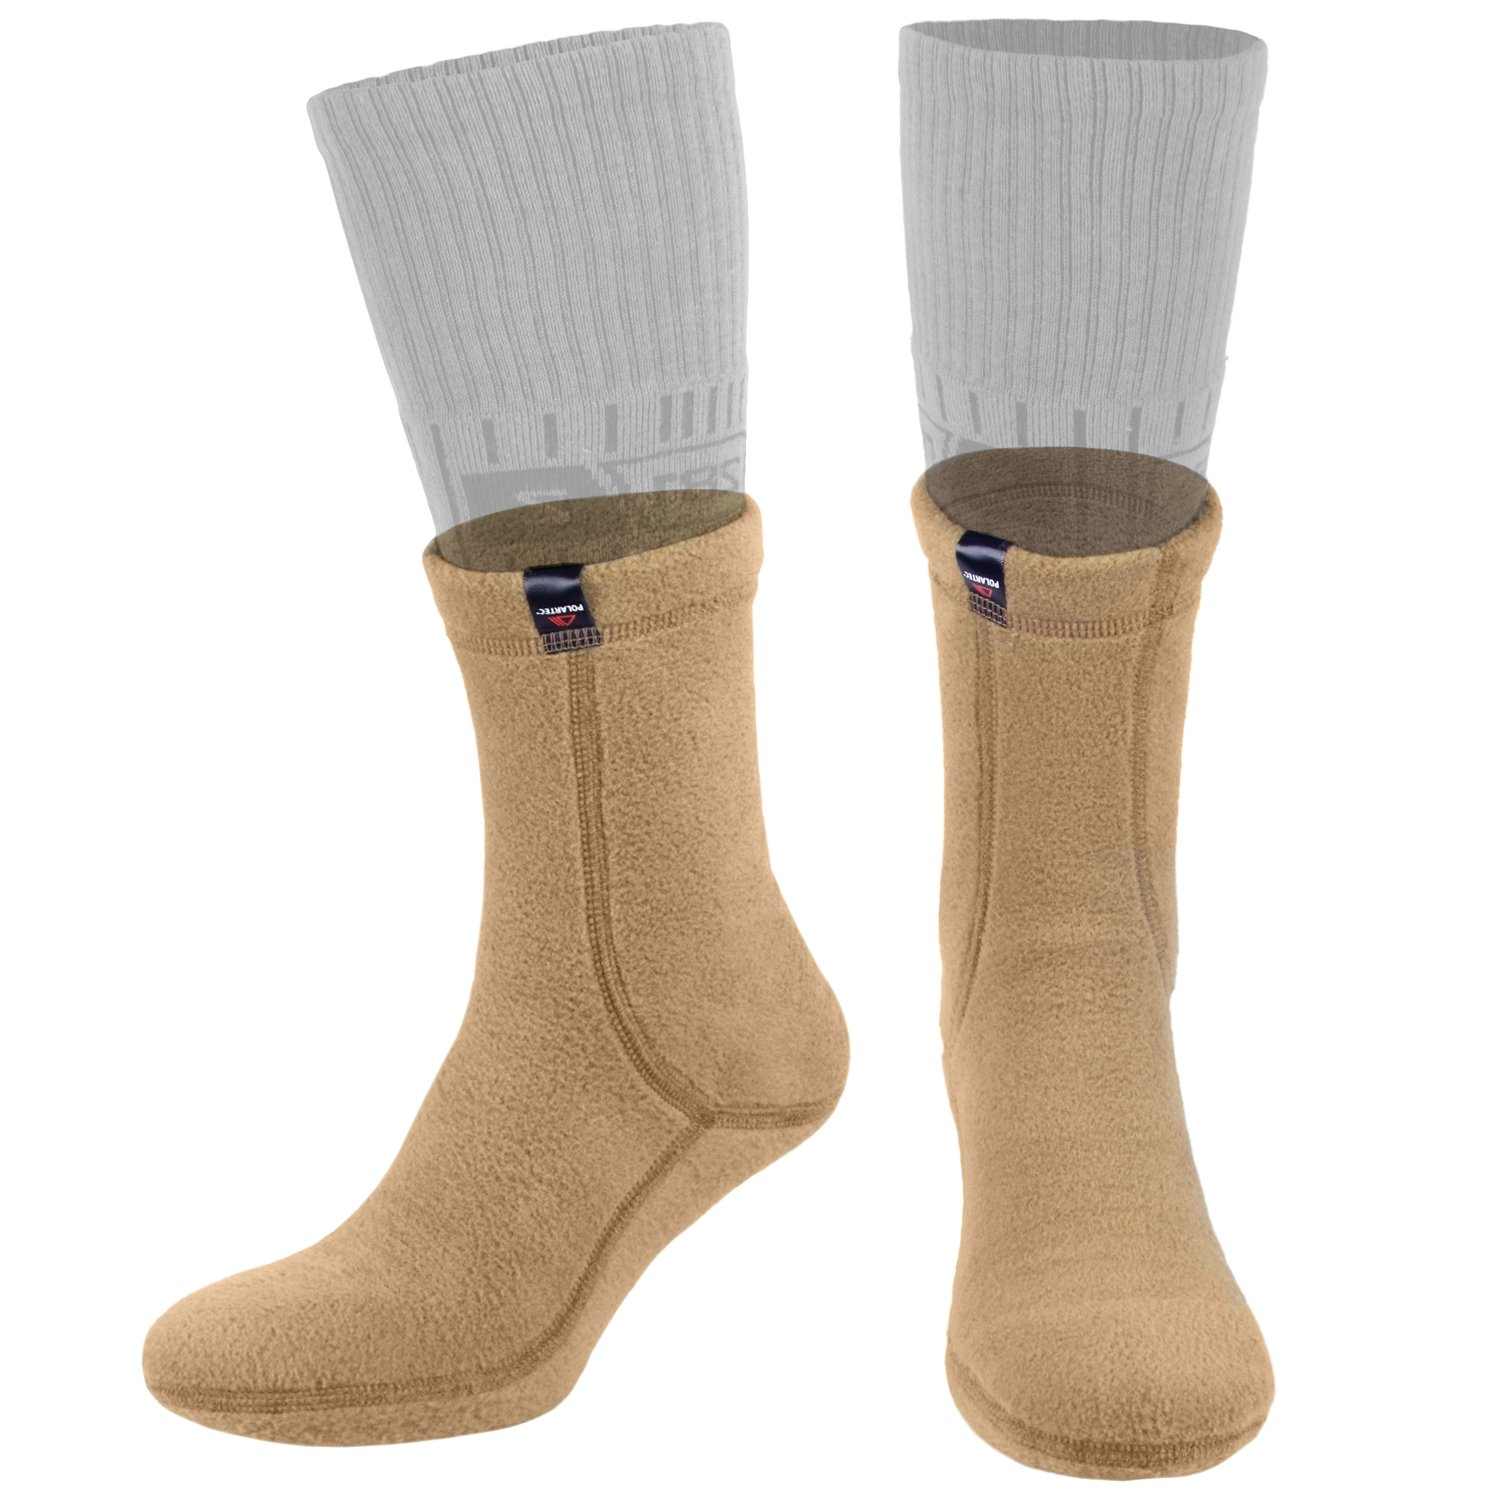 Hiking Warm Liners Boot Socks - Military Tactical Outdoor Sport - Polartec Fleece by 281Z (Medium, Coyote)